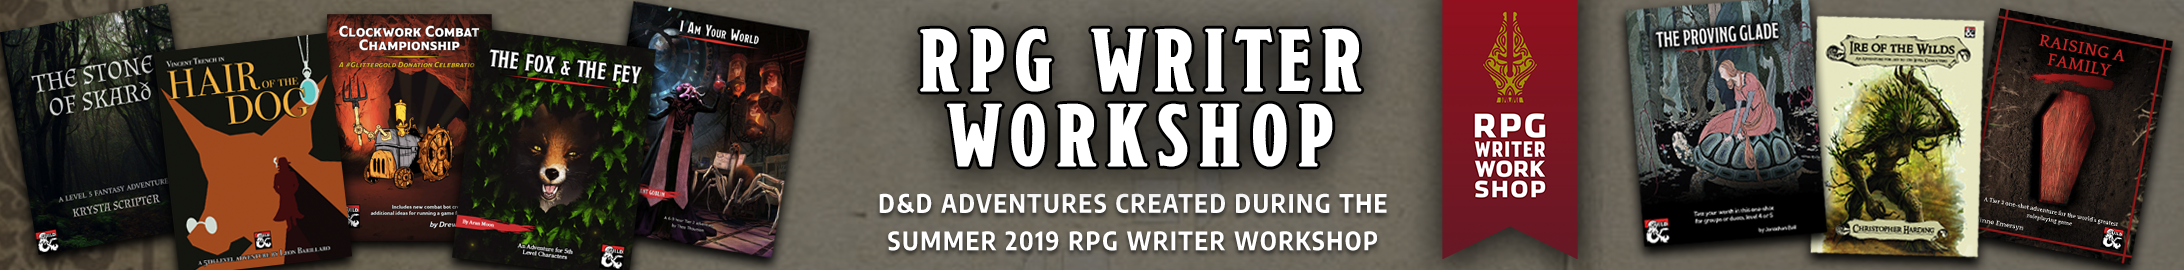 The RPG Writer Workshop is designed to help aspiring authors write, produce, and publish their first RPG adventures.<br />The Workshop is held twice a year and has an active community with more than 1,000 writers.